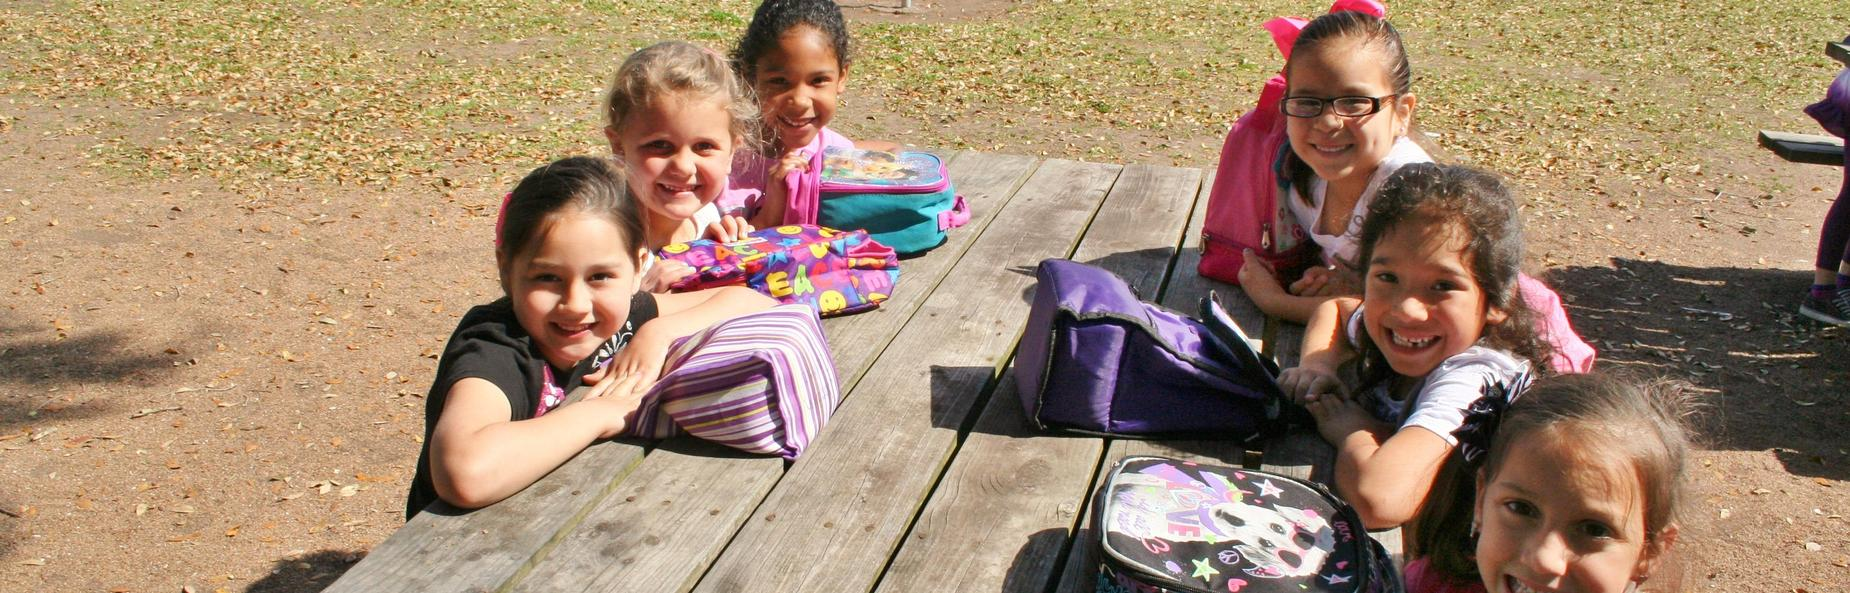 children at a picnic table